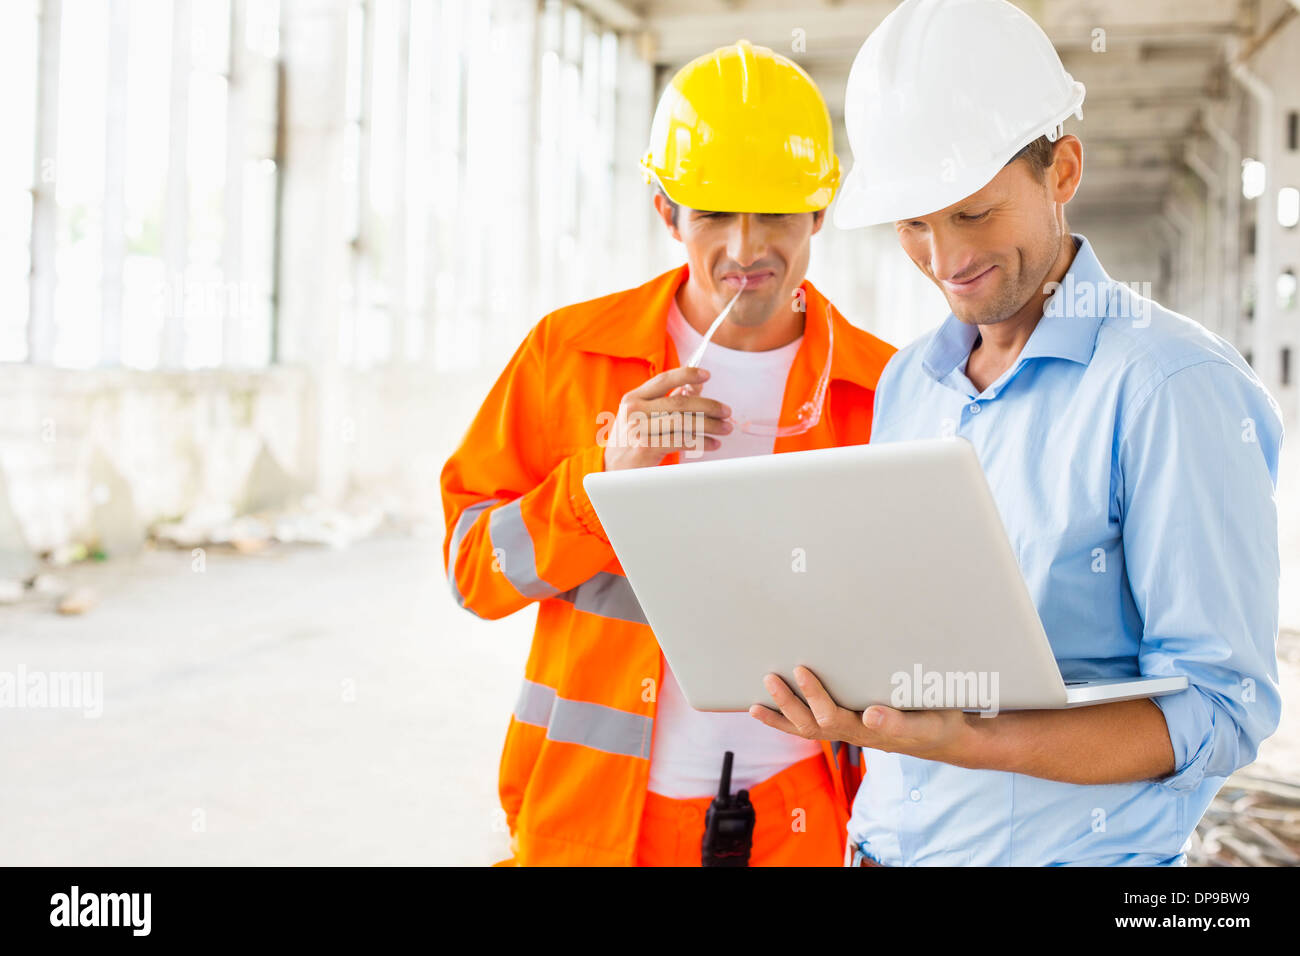 Male architects using laptop at construction site - Stock Image